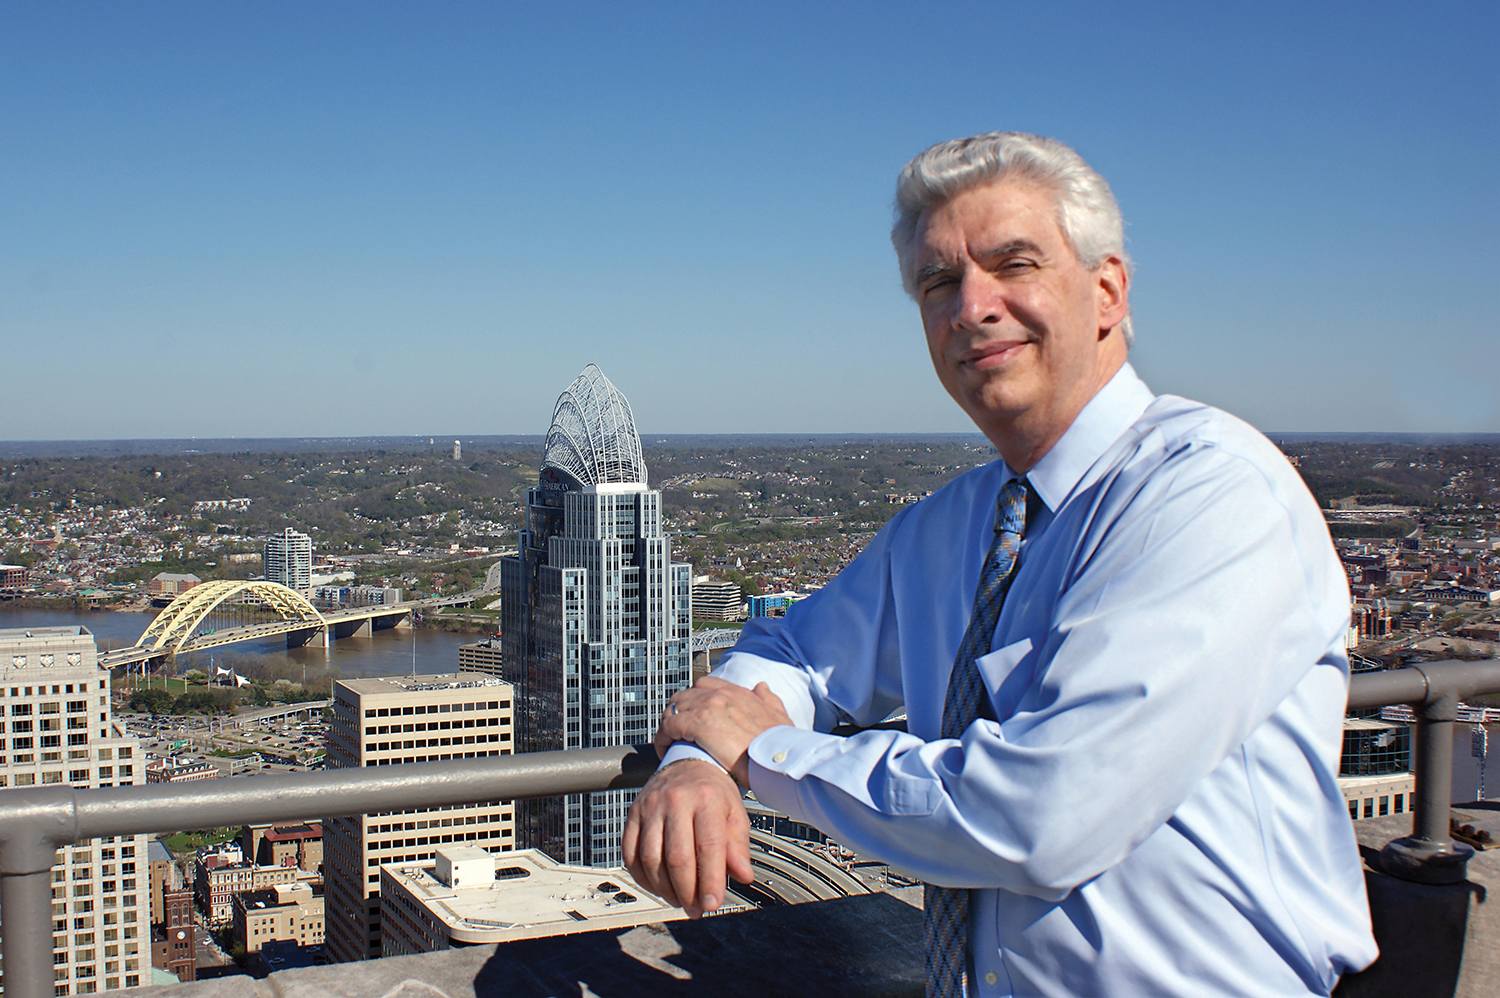 Austrian Honorary Consul Clement Luken on top of his office building, the Carew Tower in Cincinnati